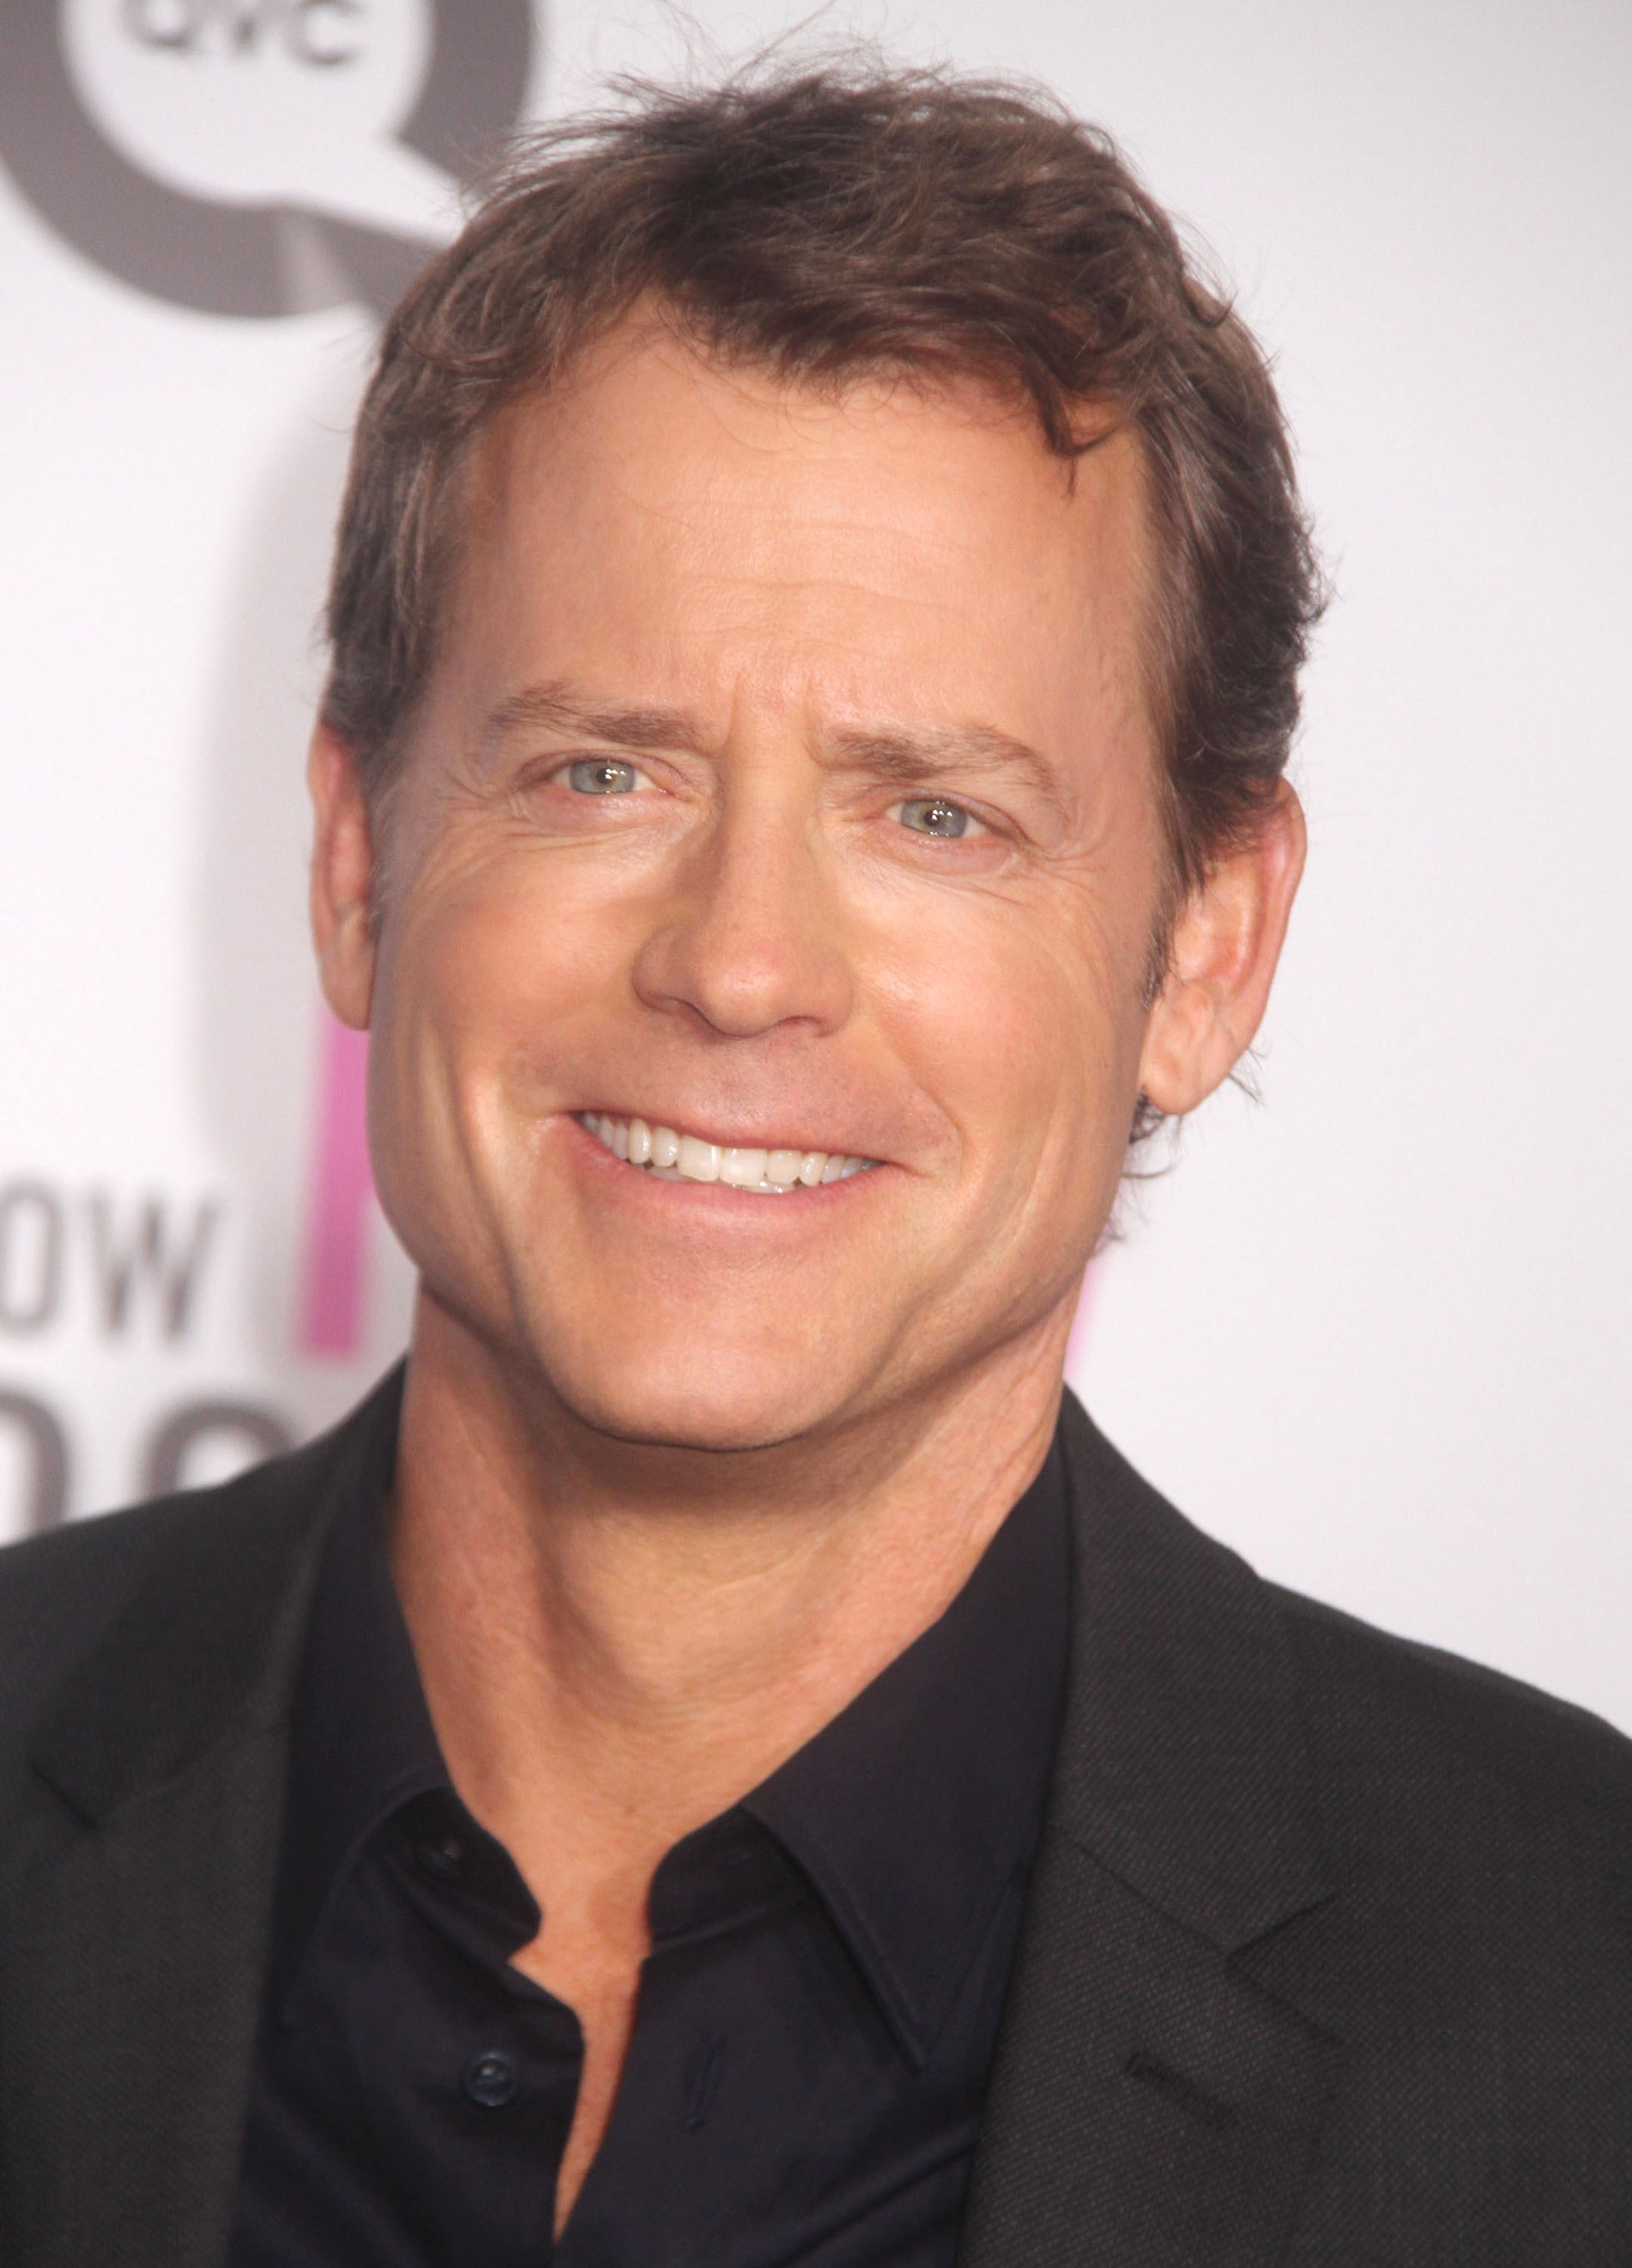 Greg Kinnear  Known people  famous people news and